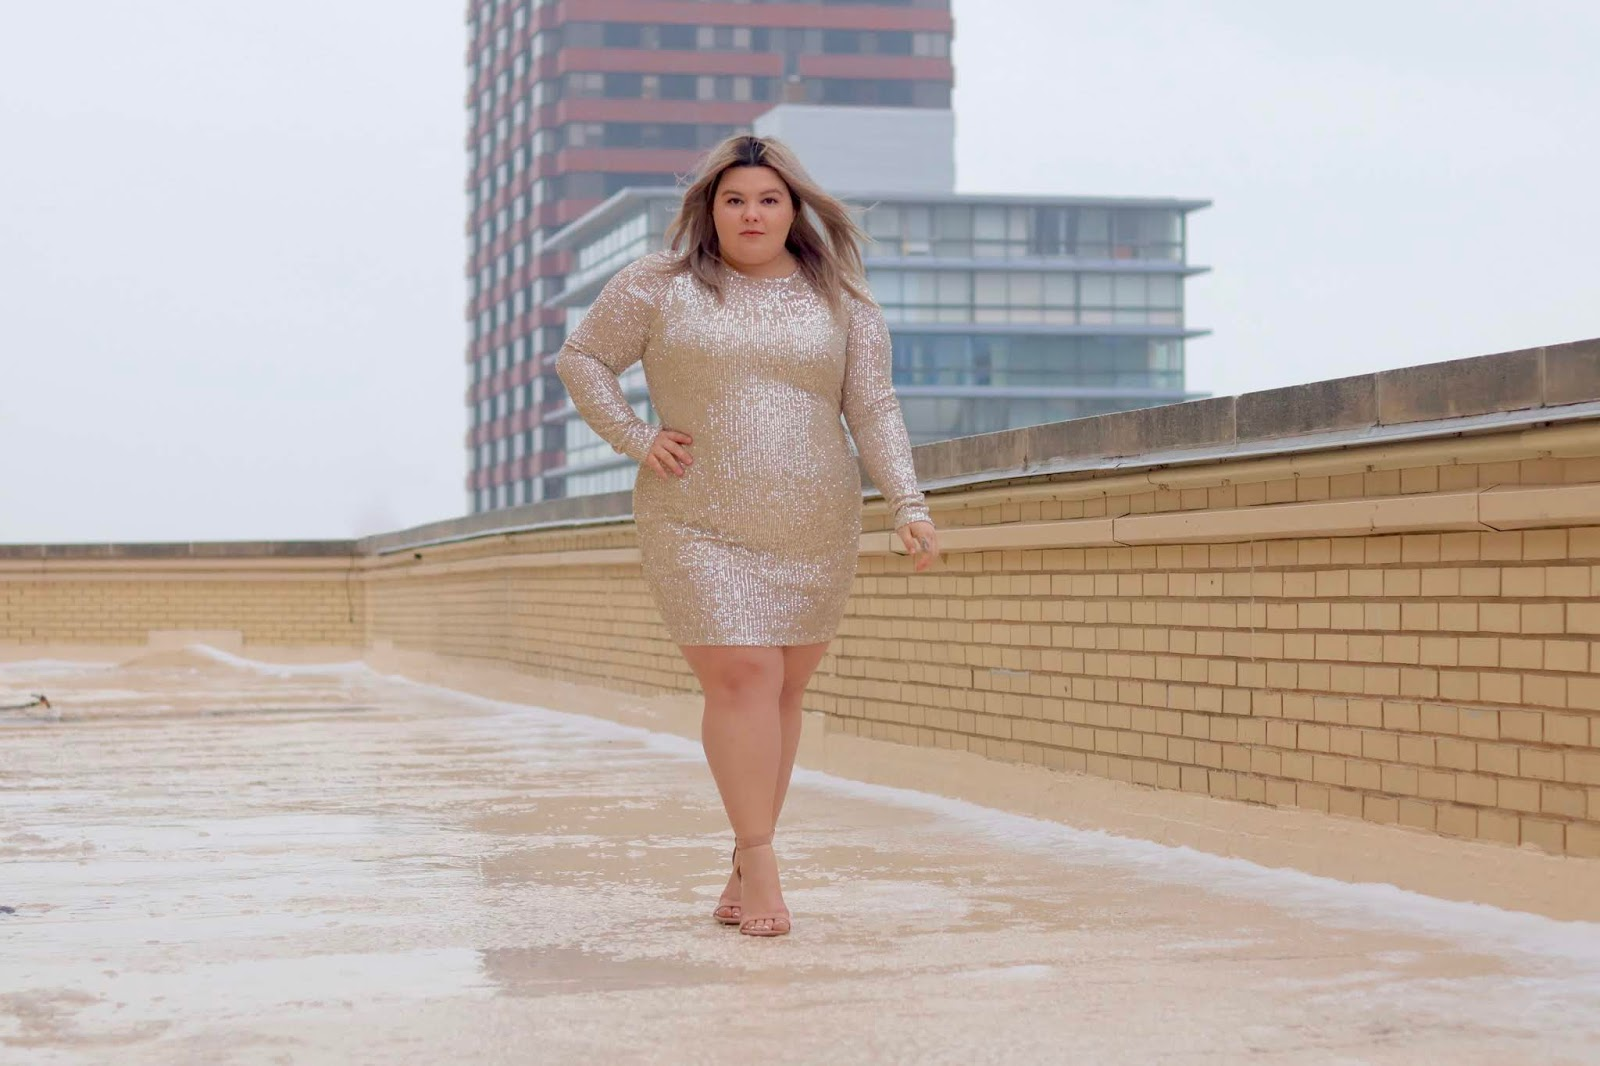 Chicago Plus Size Petite Fashion Blogger, YouTuber, and model Natalie Craig, of Natalie in the City, shares her favorite outfits for Valentine's Day 2019 from Fashion Nova Curve.